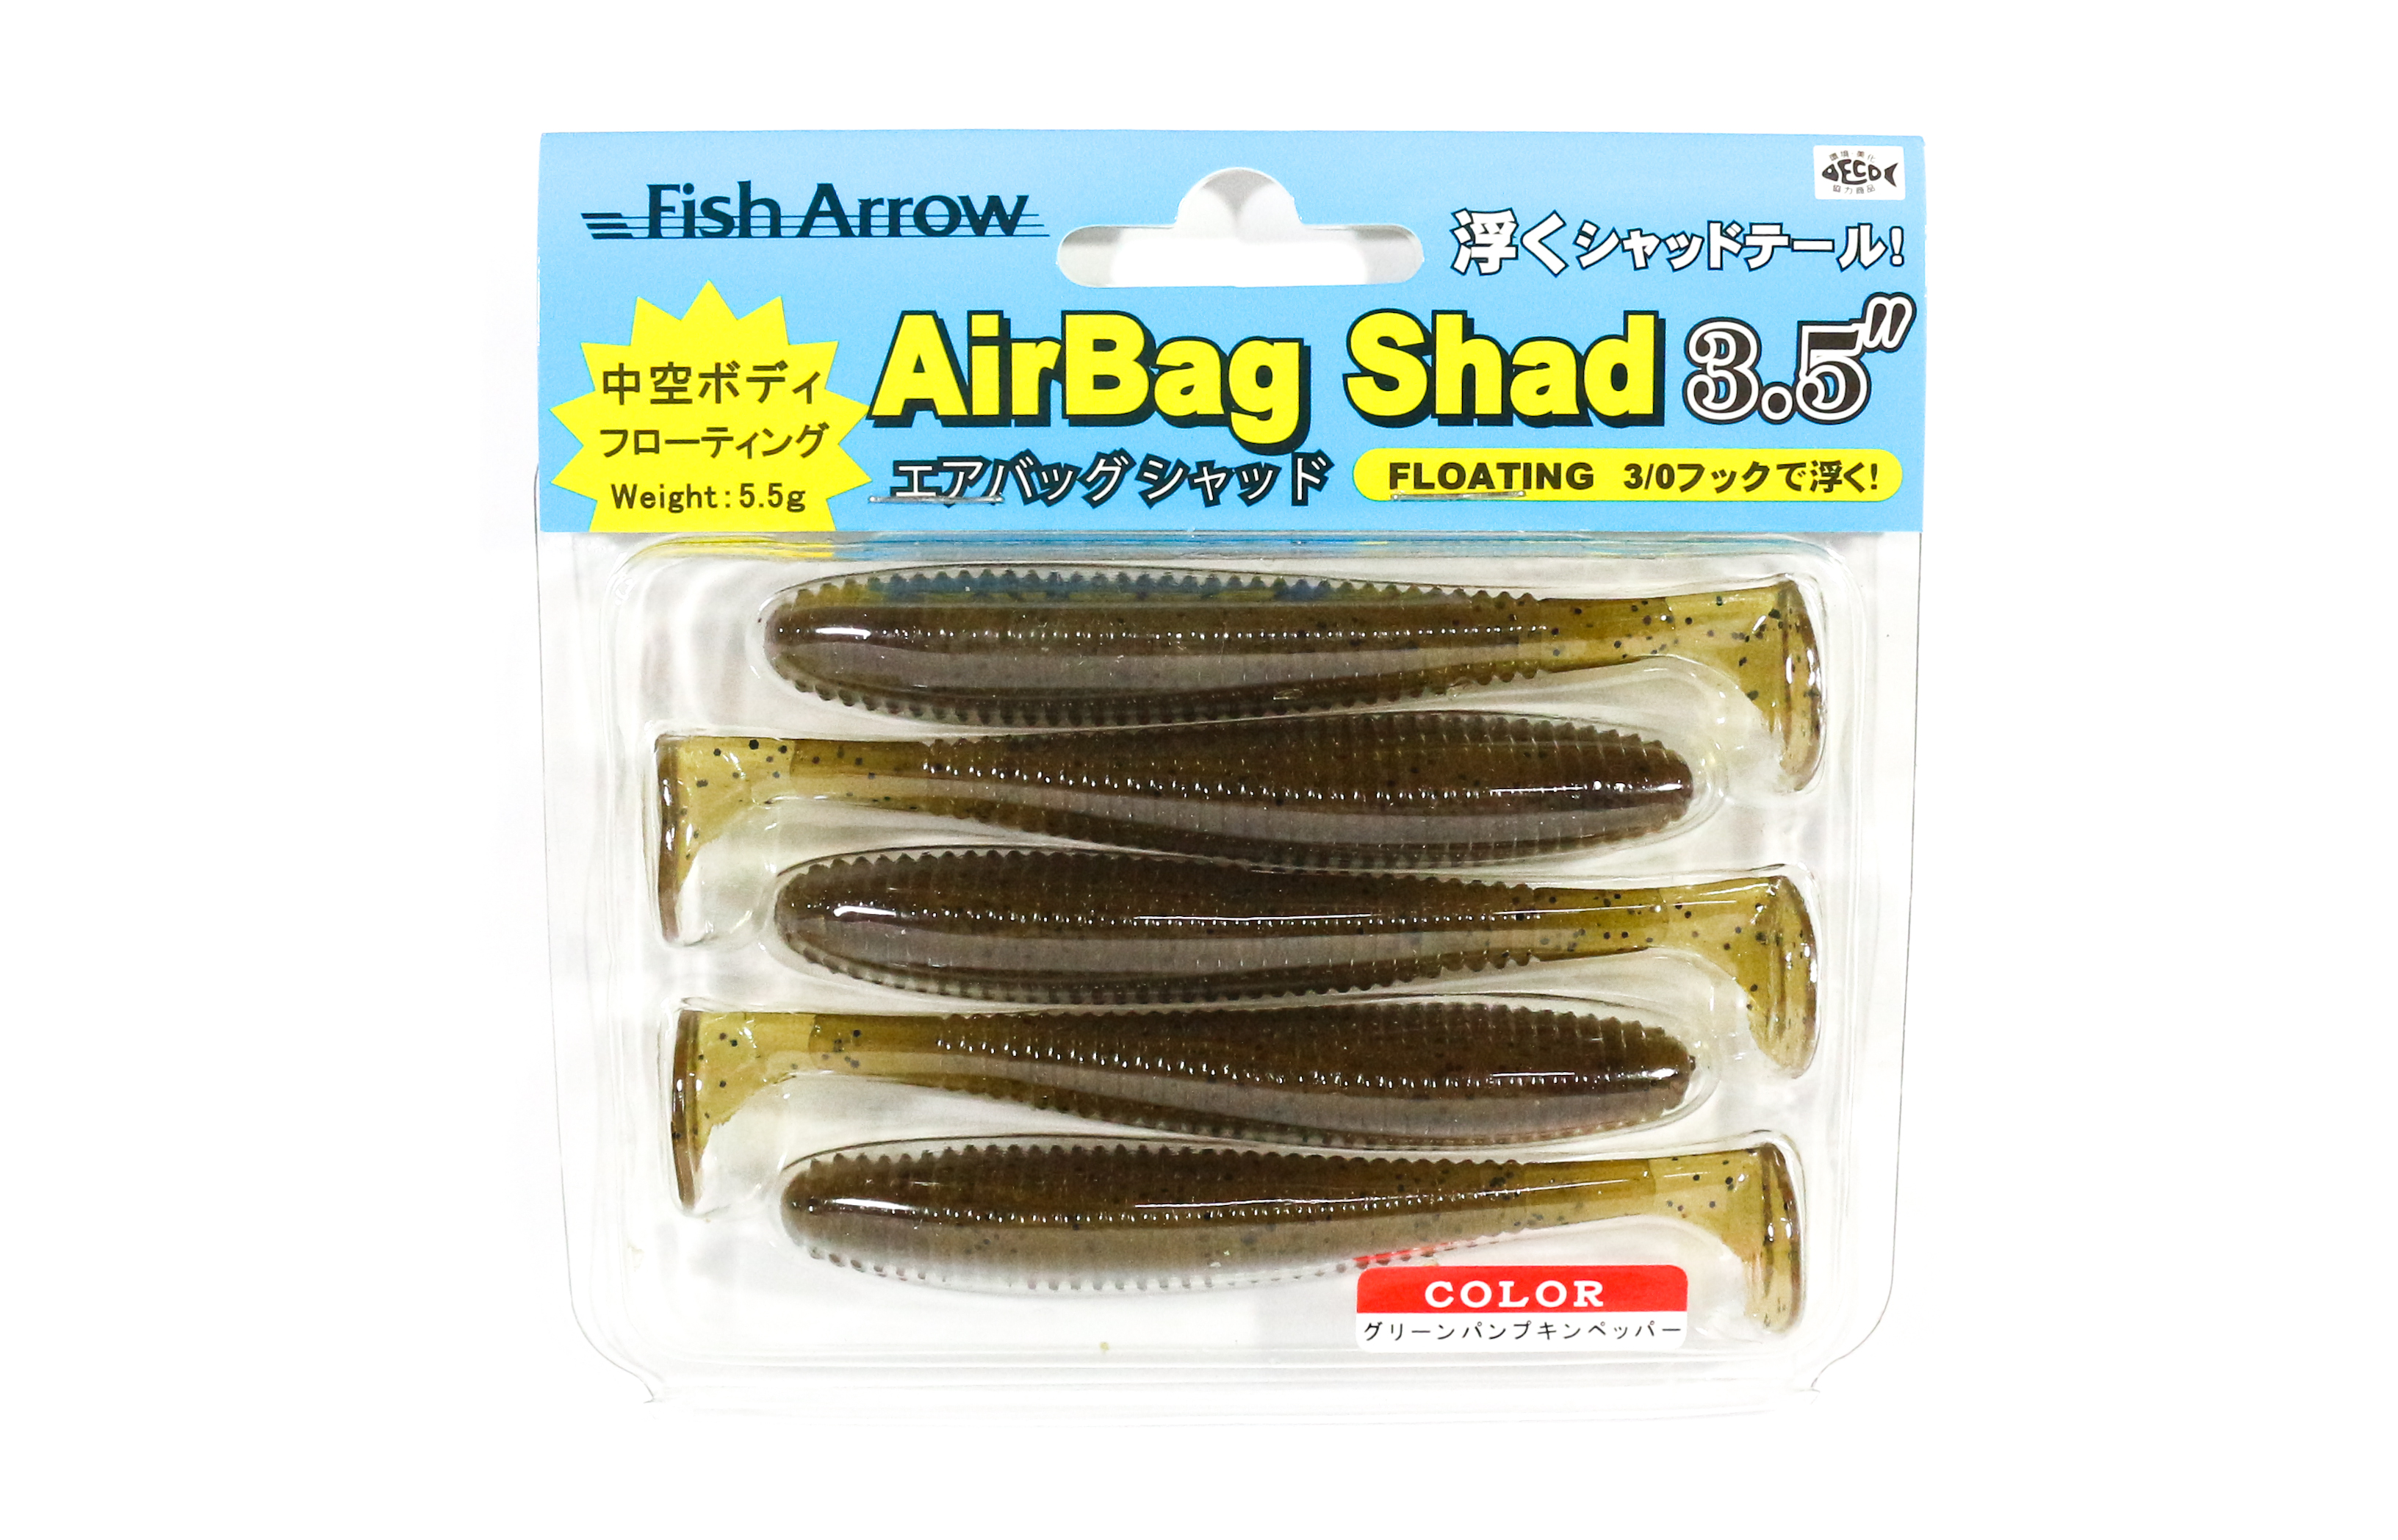 Fish Arrow Soft Lure Air Bag Shad 3.5 Inch 5 Piece per pack #01 (2169)